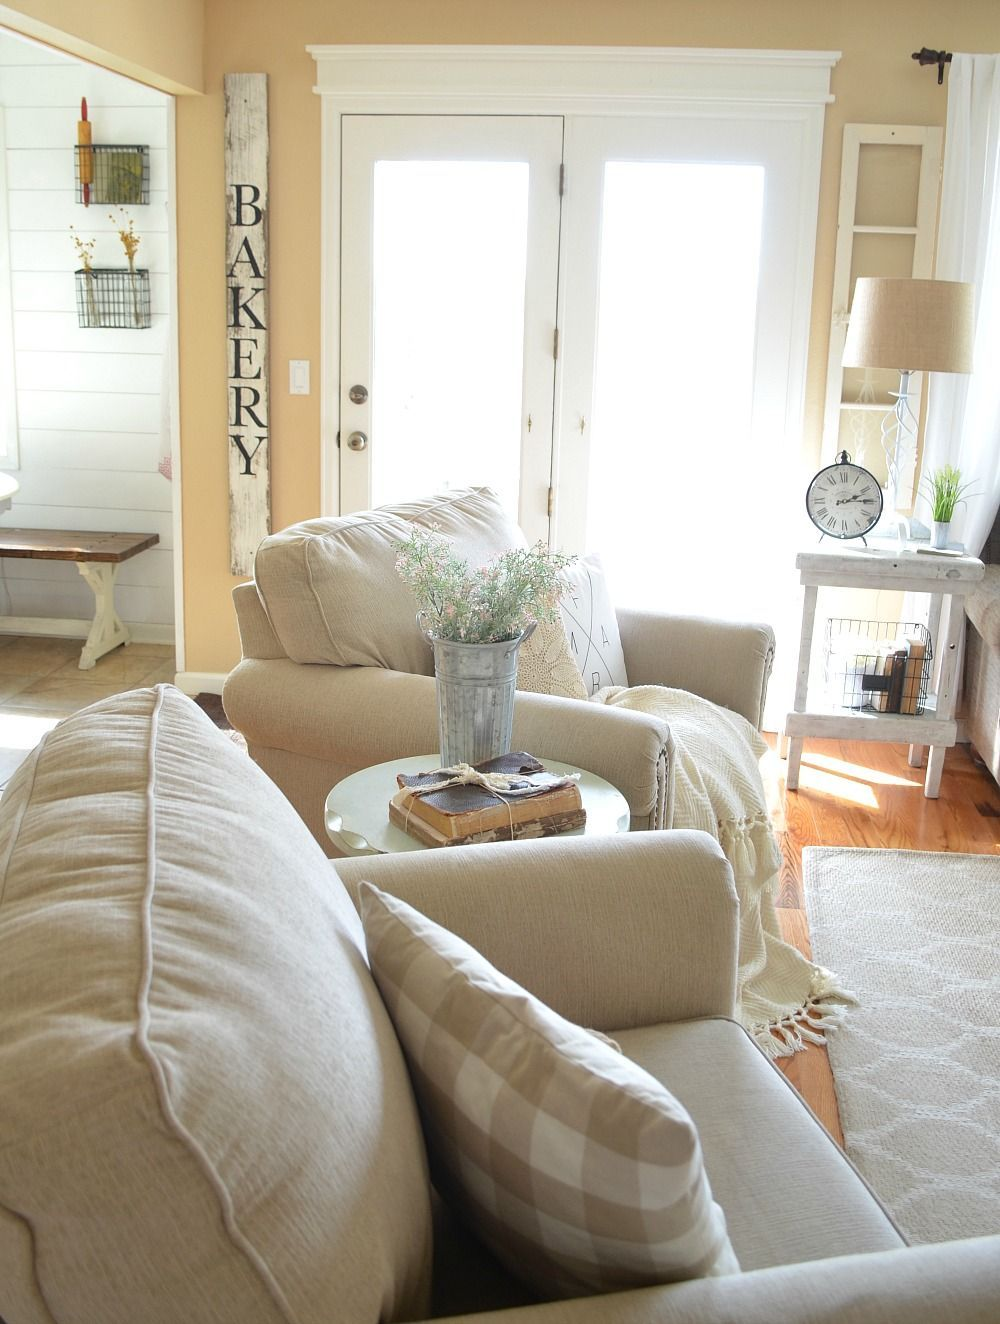 32+ Gorgeous Farmhouse Living Room Decor Ideas for Your Home images